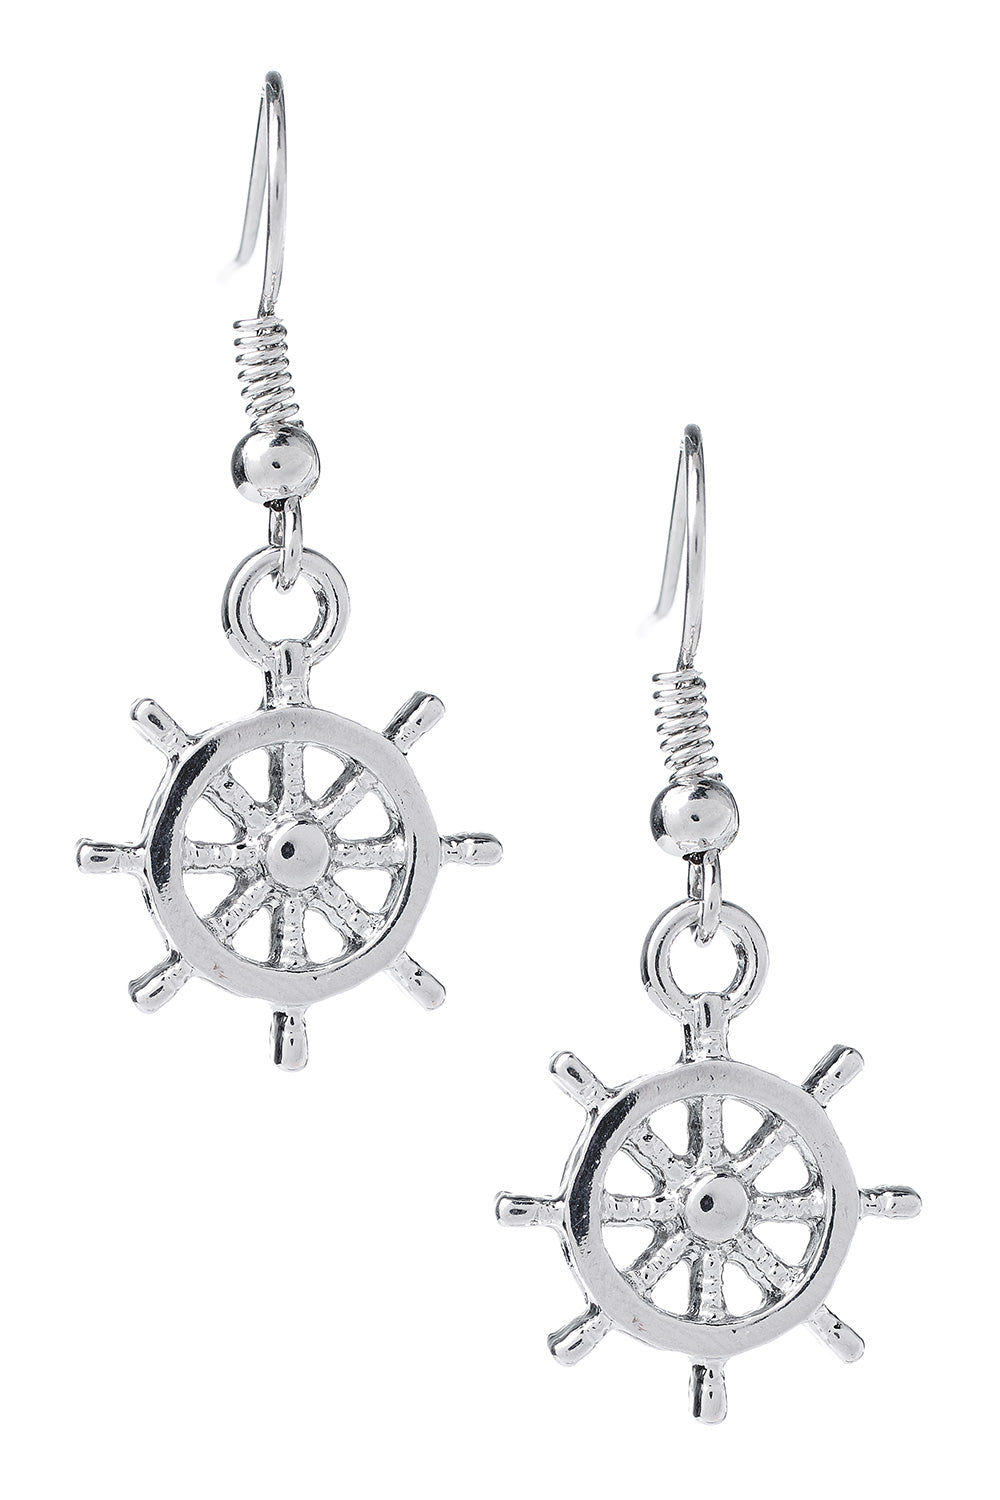 Type 4 Nautical Sense Earrings